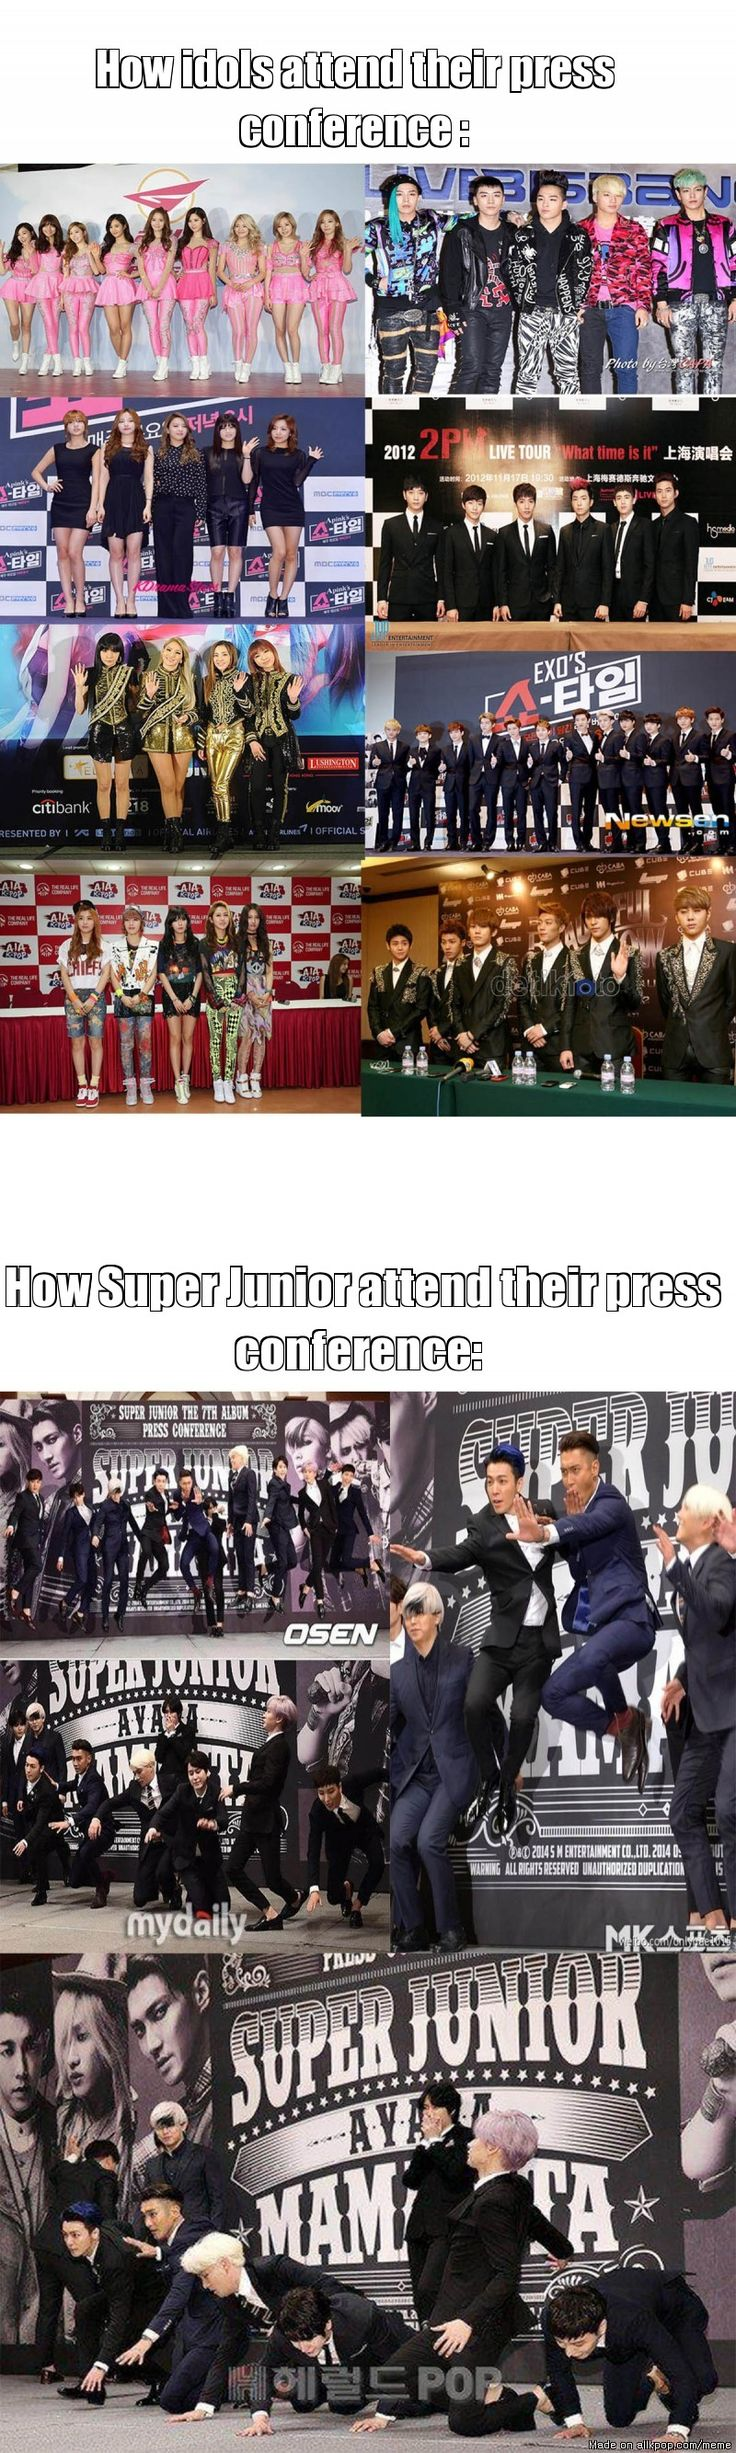 Super Junior.. XD